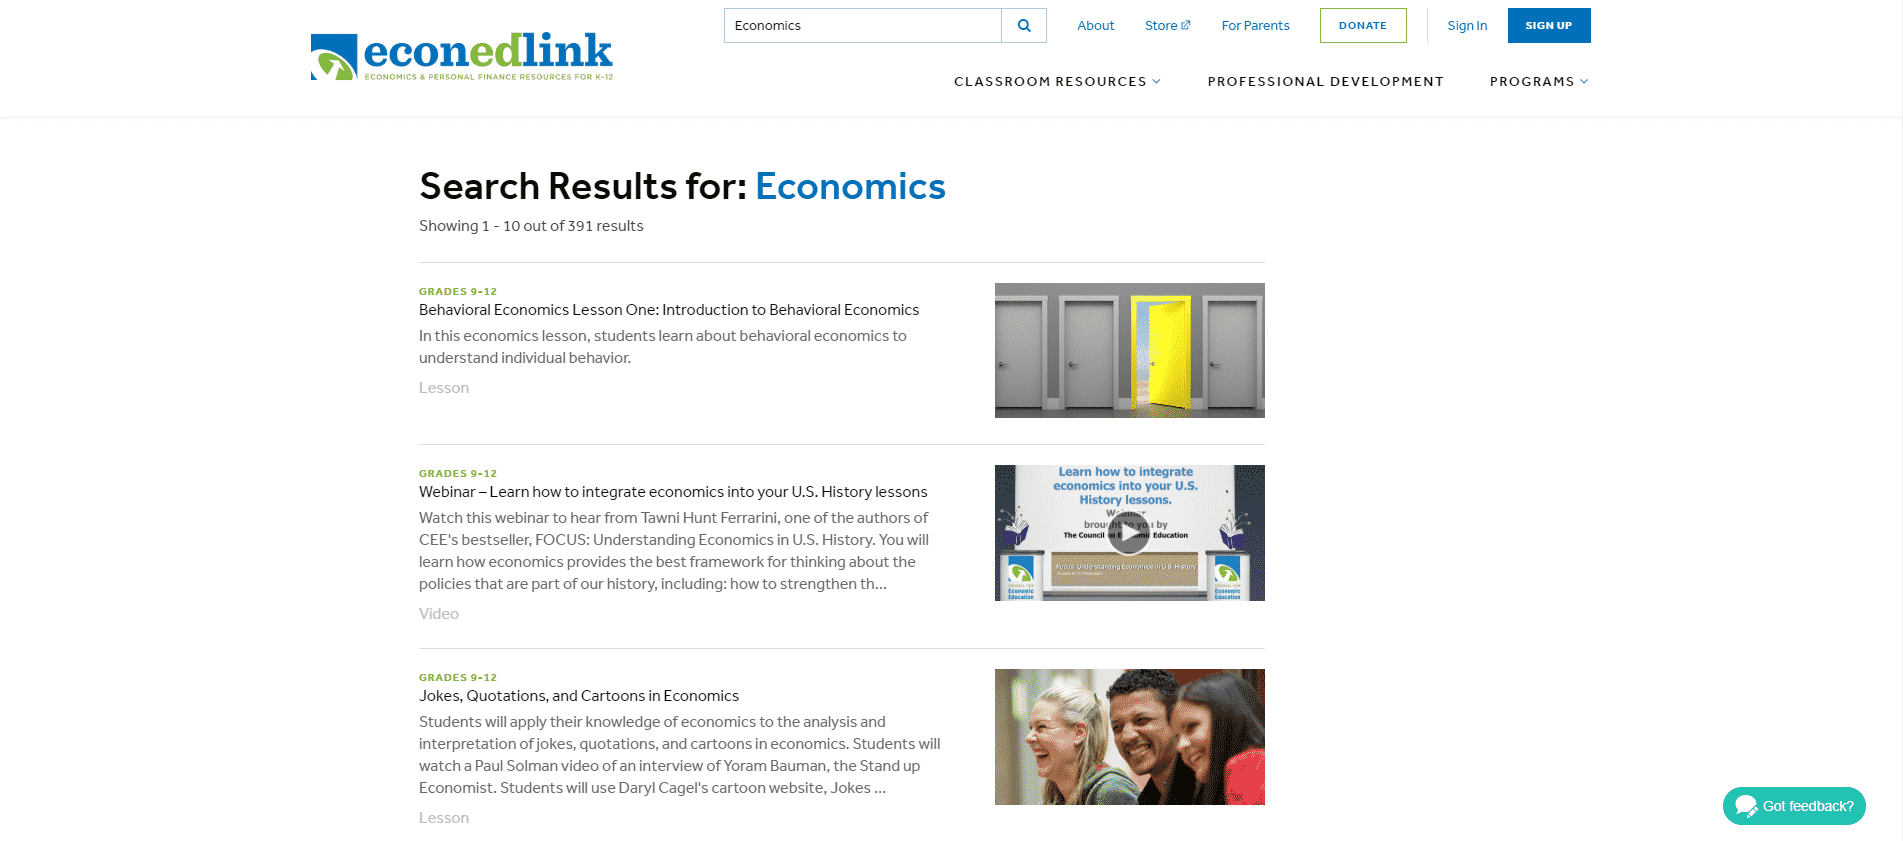 EconedLink Learn Economic Lessons Online